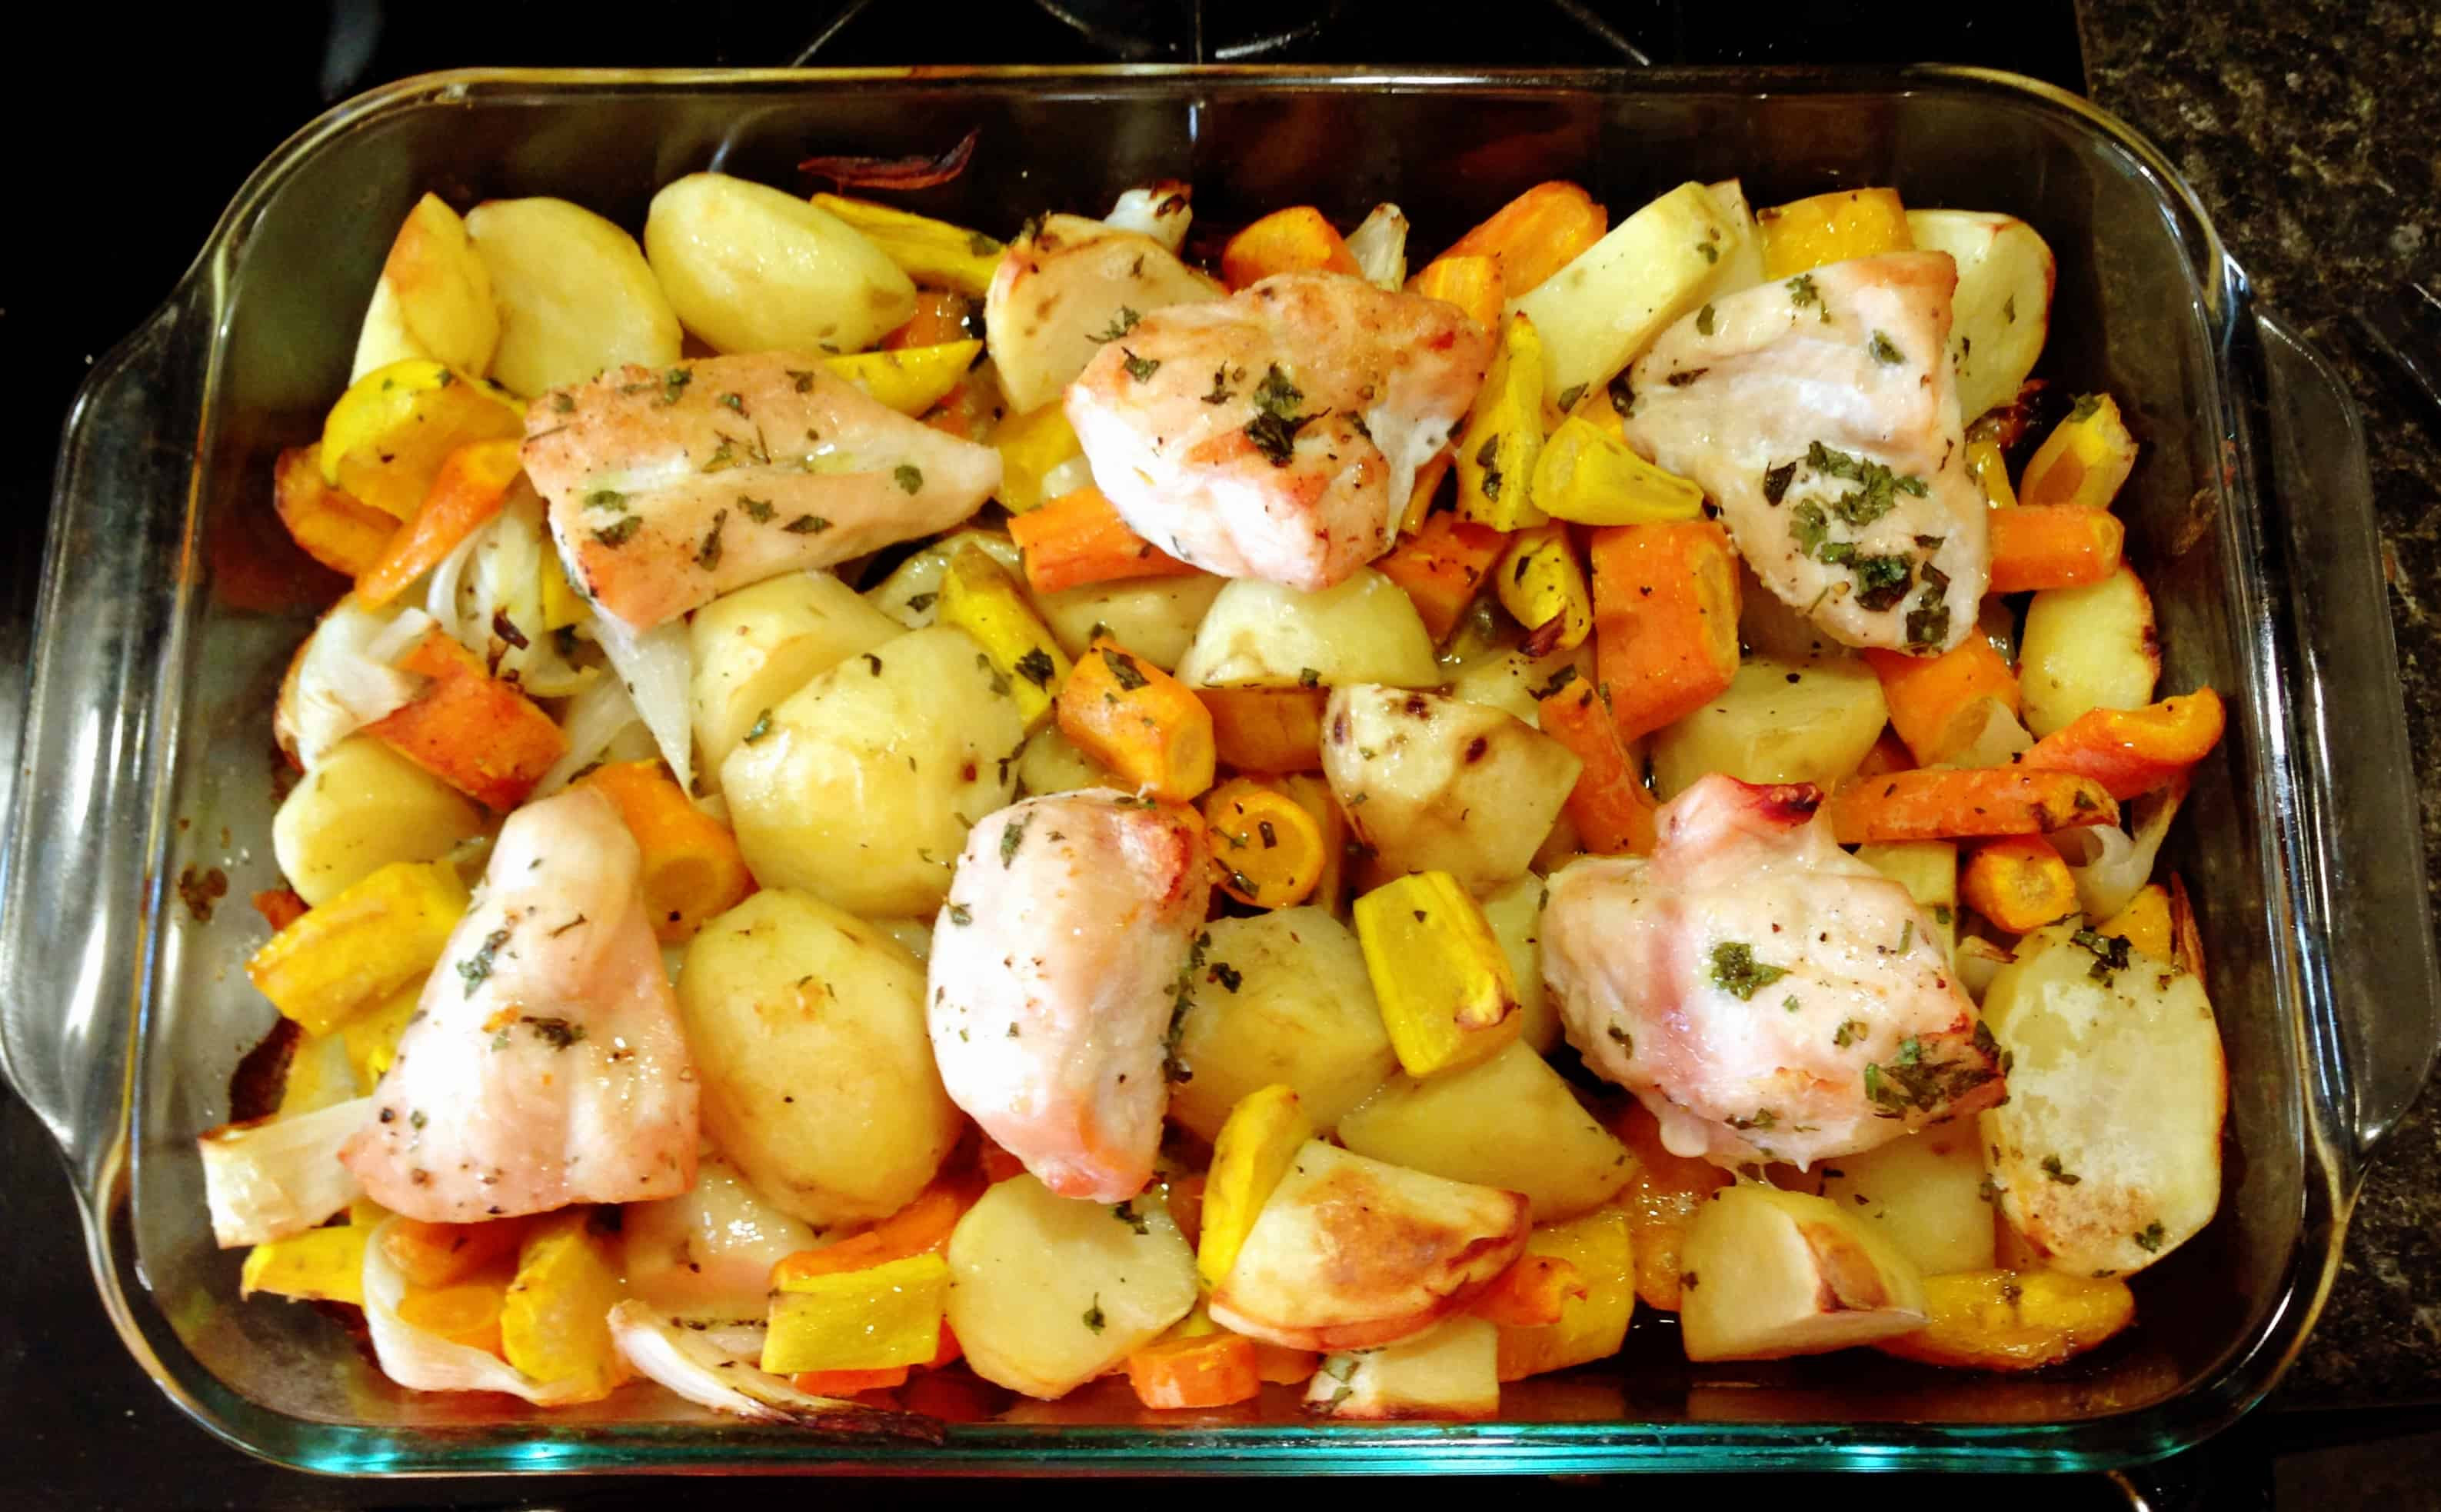 Baked Chicken And Potatoes  Baked chicken potatoes carrots and herbs from the